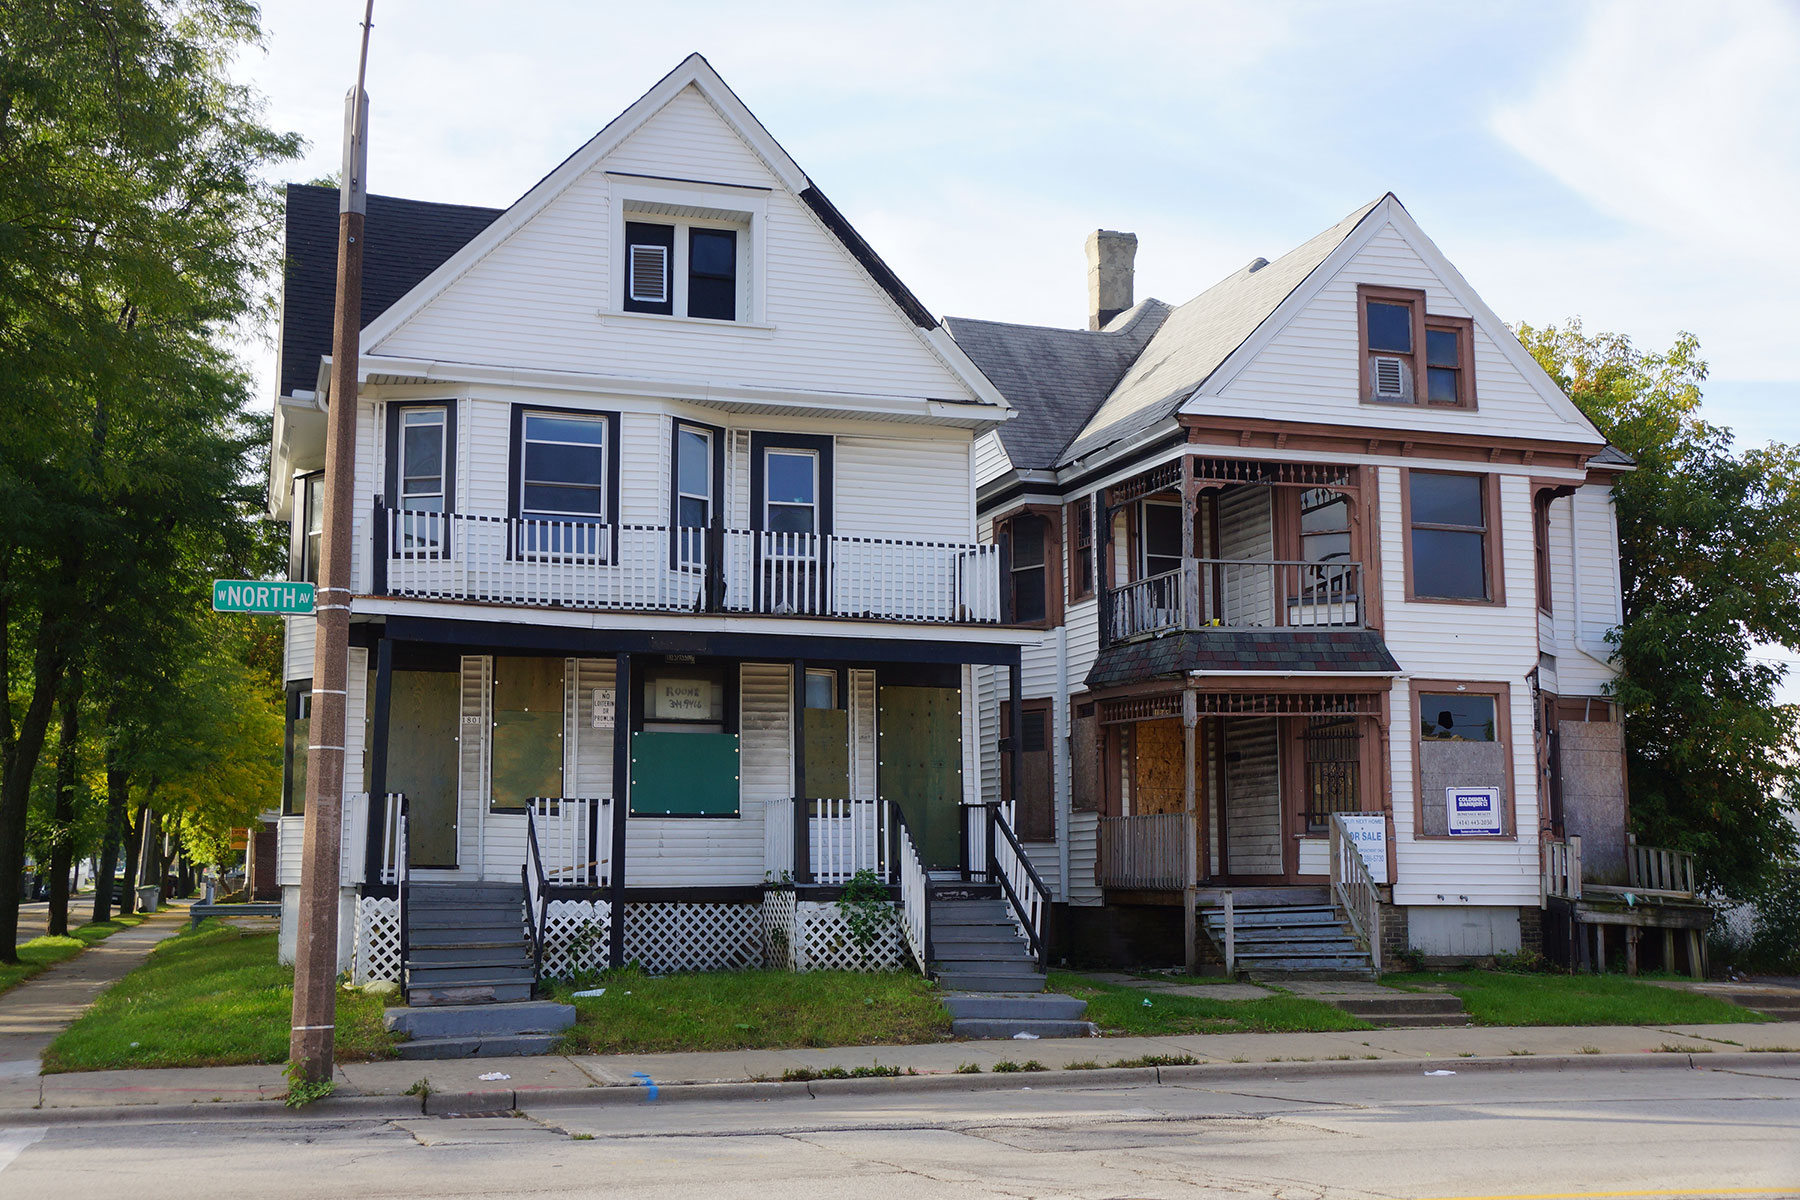 Racial disparity detailed in research on Milwaukee housing ...